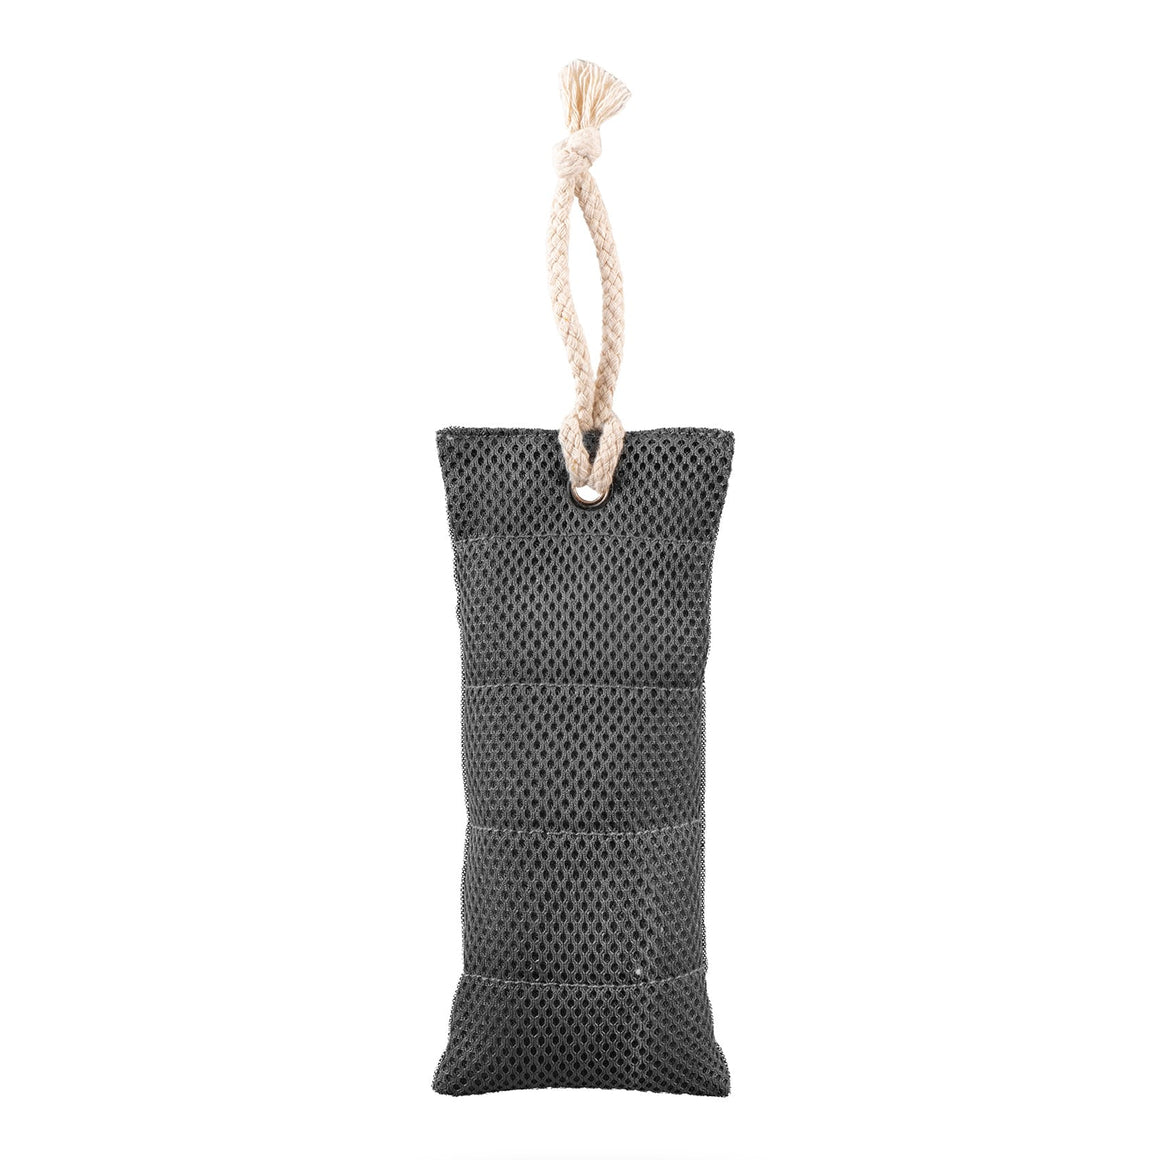 NTRL Charcoal Air Purifying Bag - 2 Pack